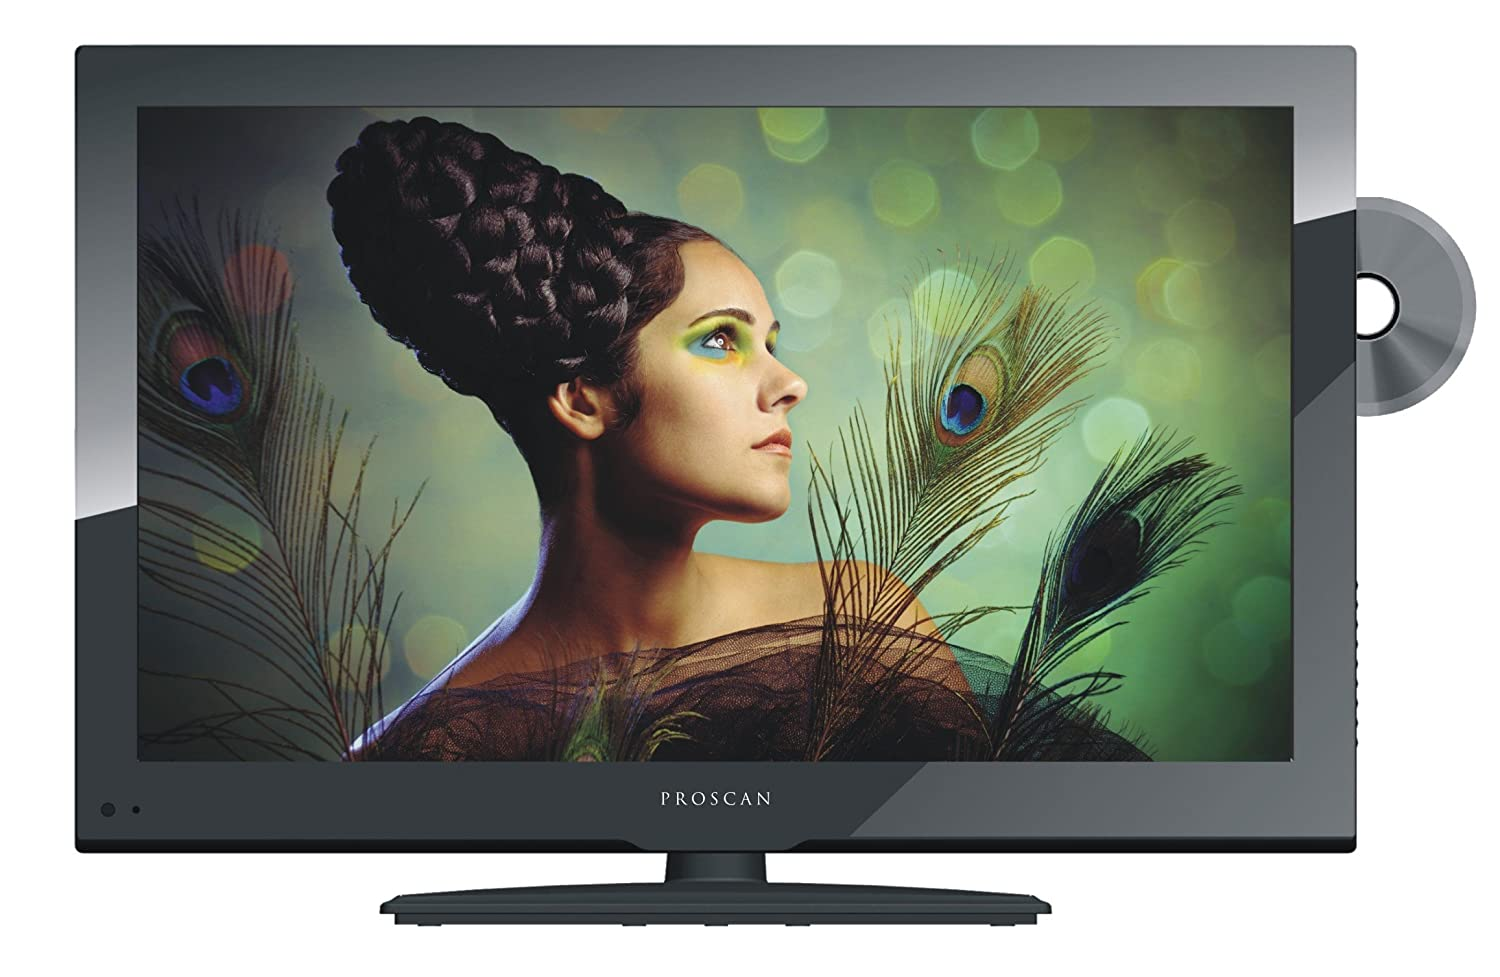 Best 32 Inch LCD TV DVD Player Combo Reviews 20162017